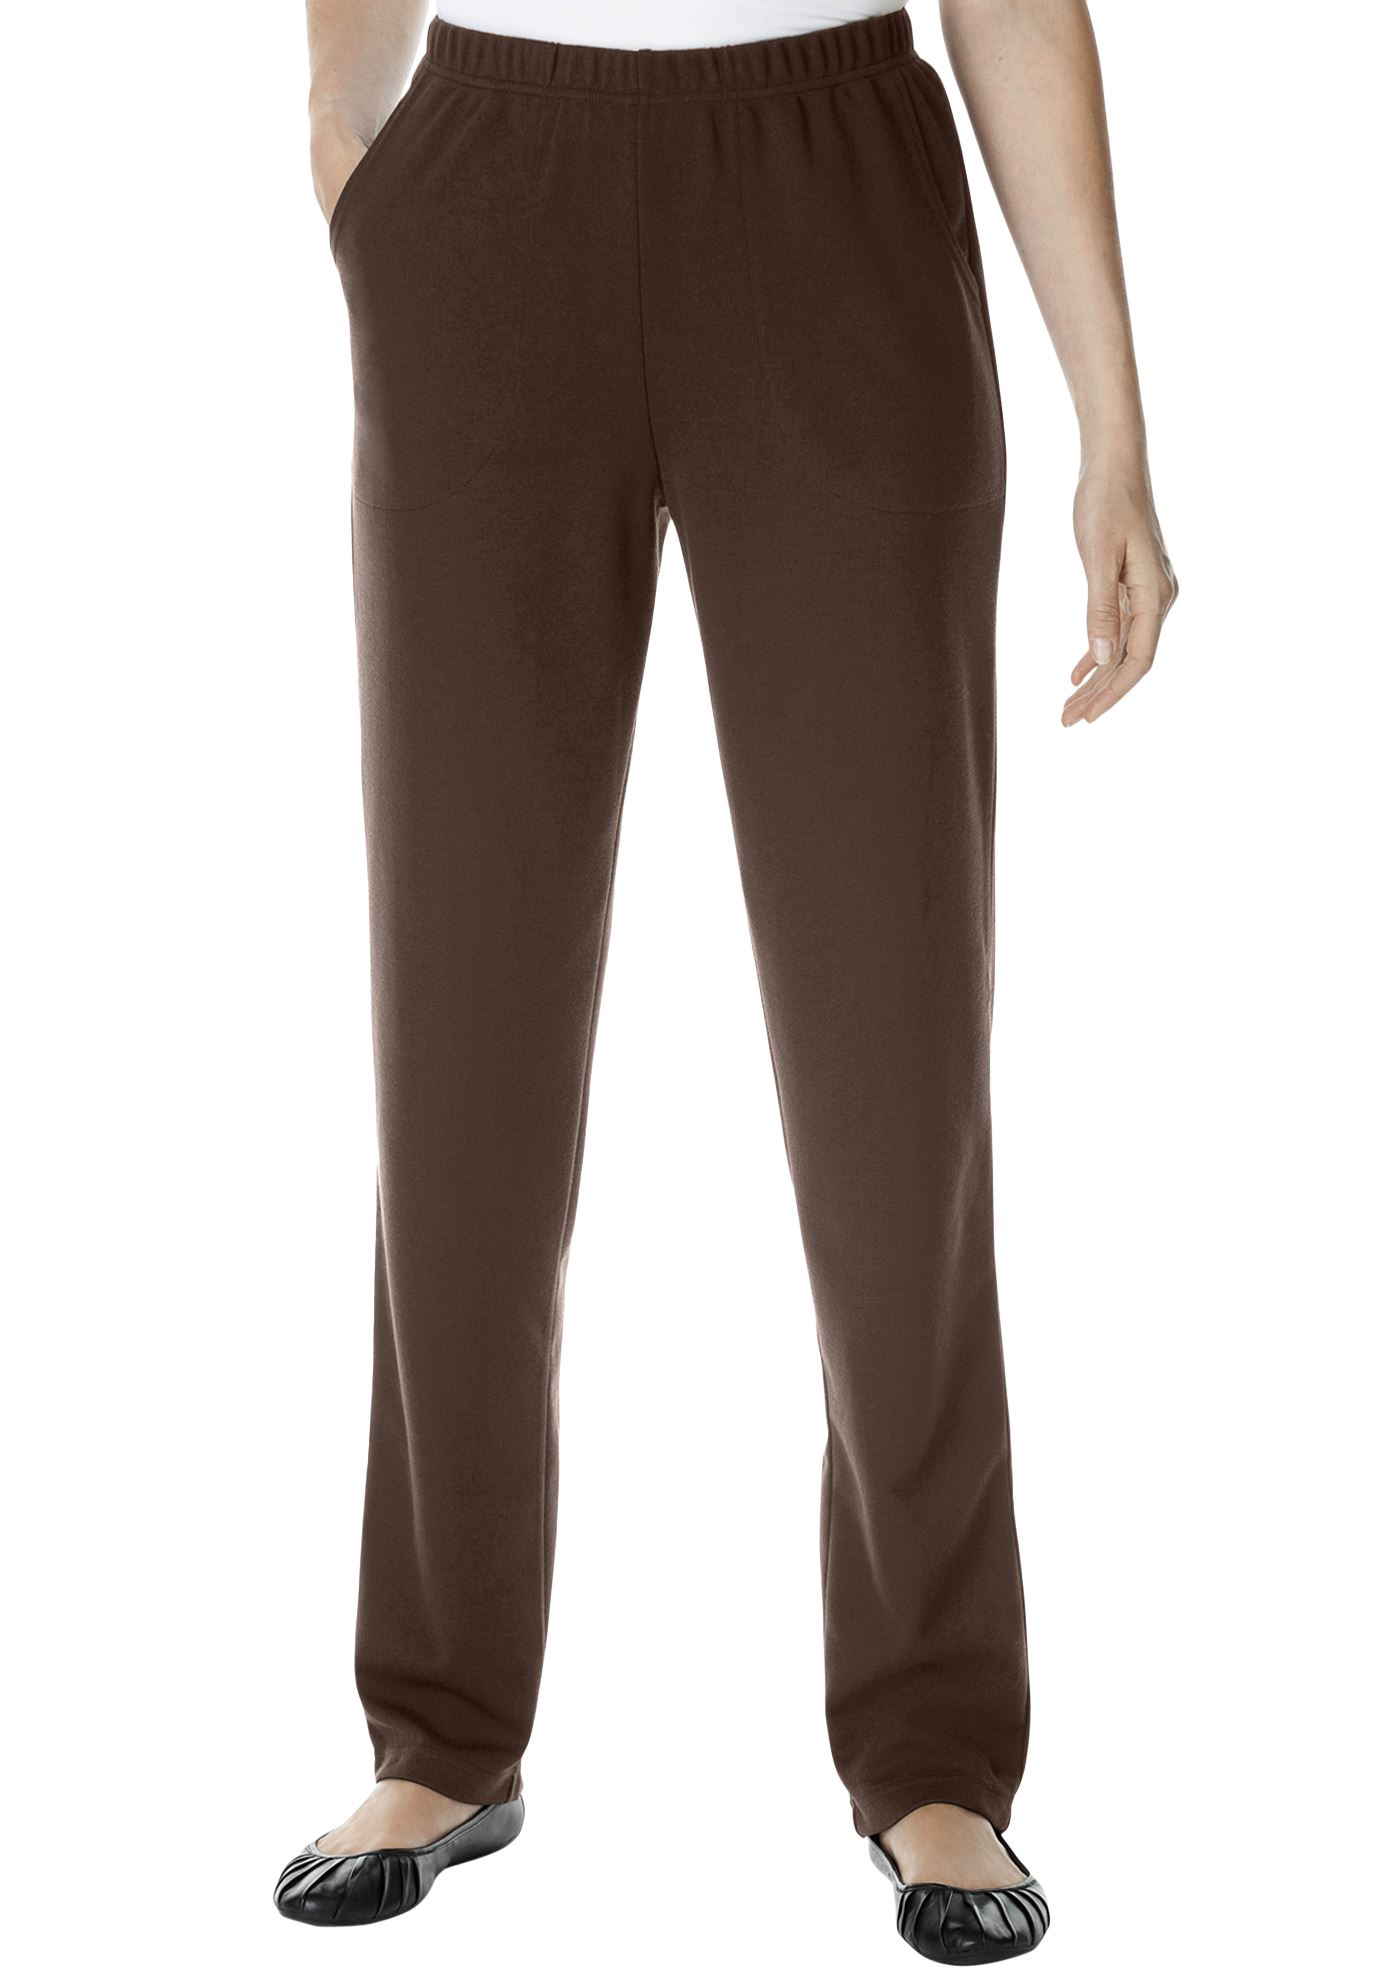 Woman Within Plus Size Petite Straight Leg Ponte Knit Pant